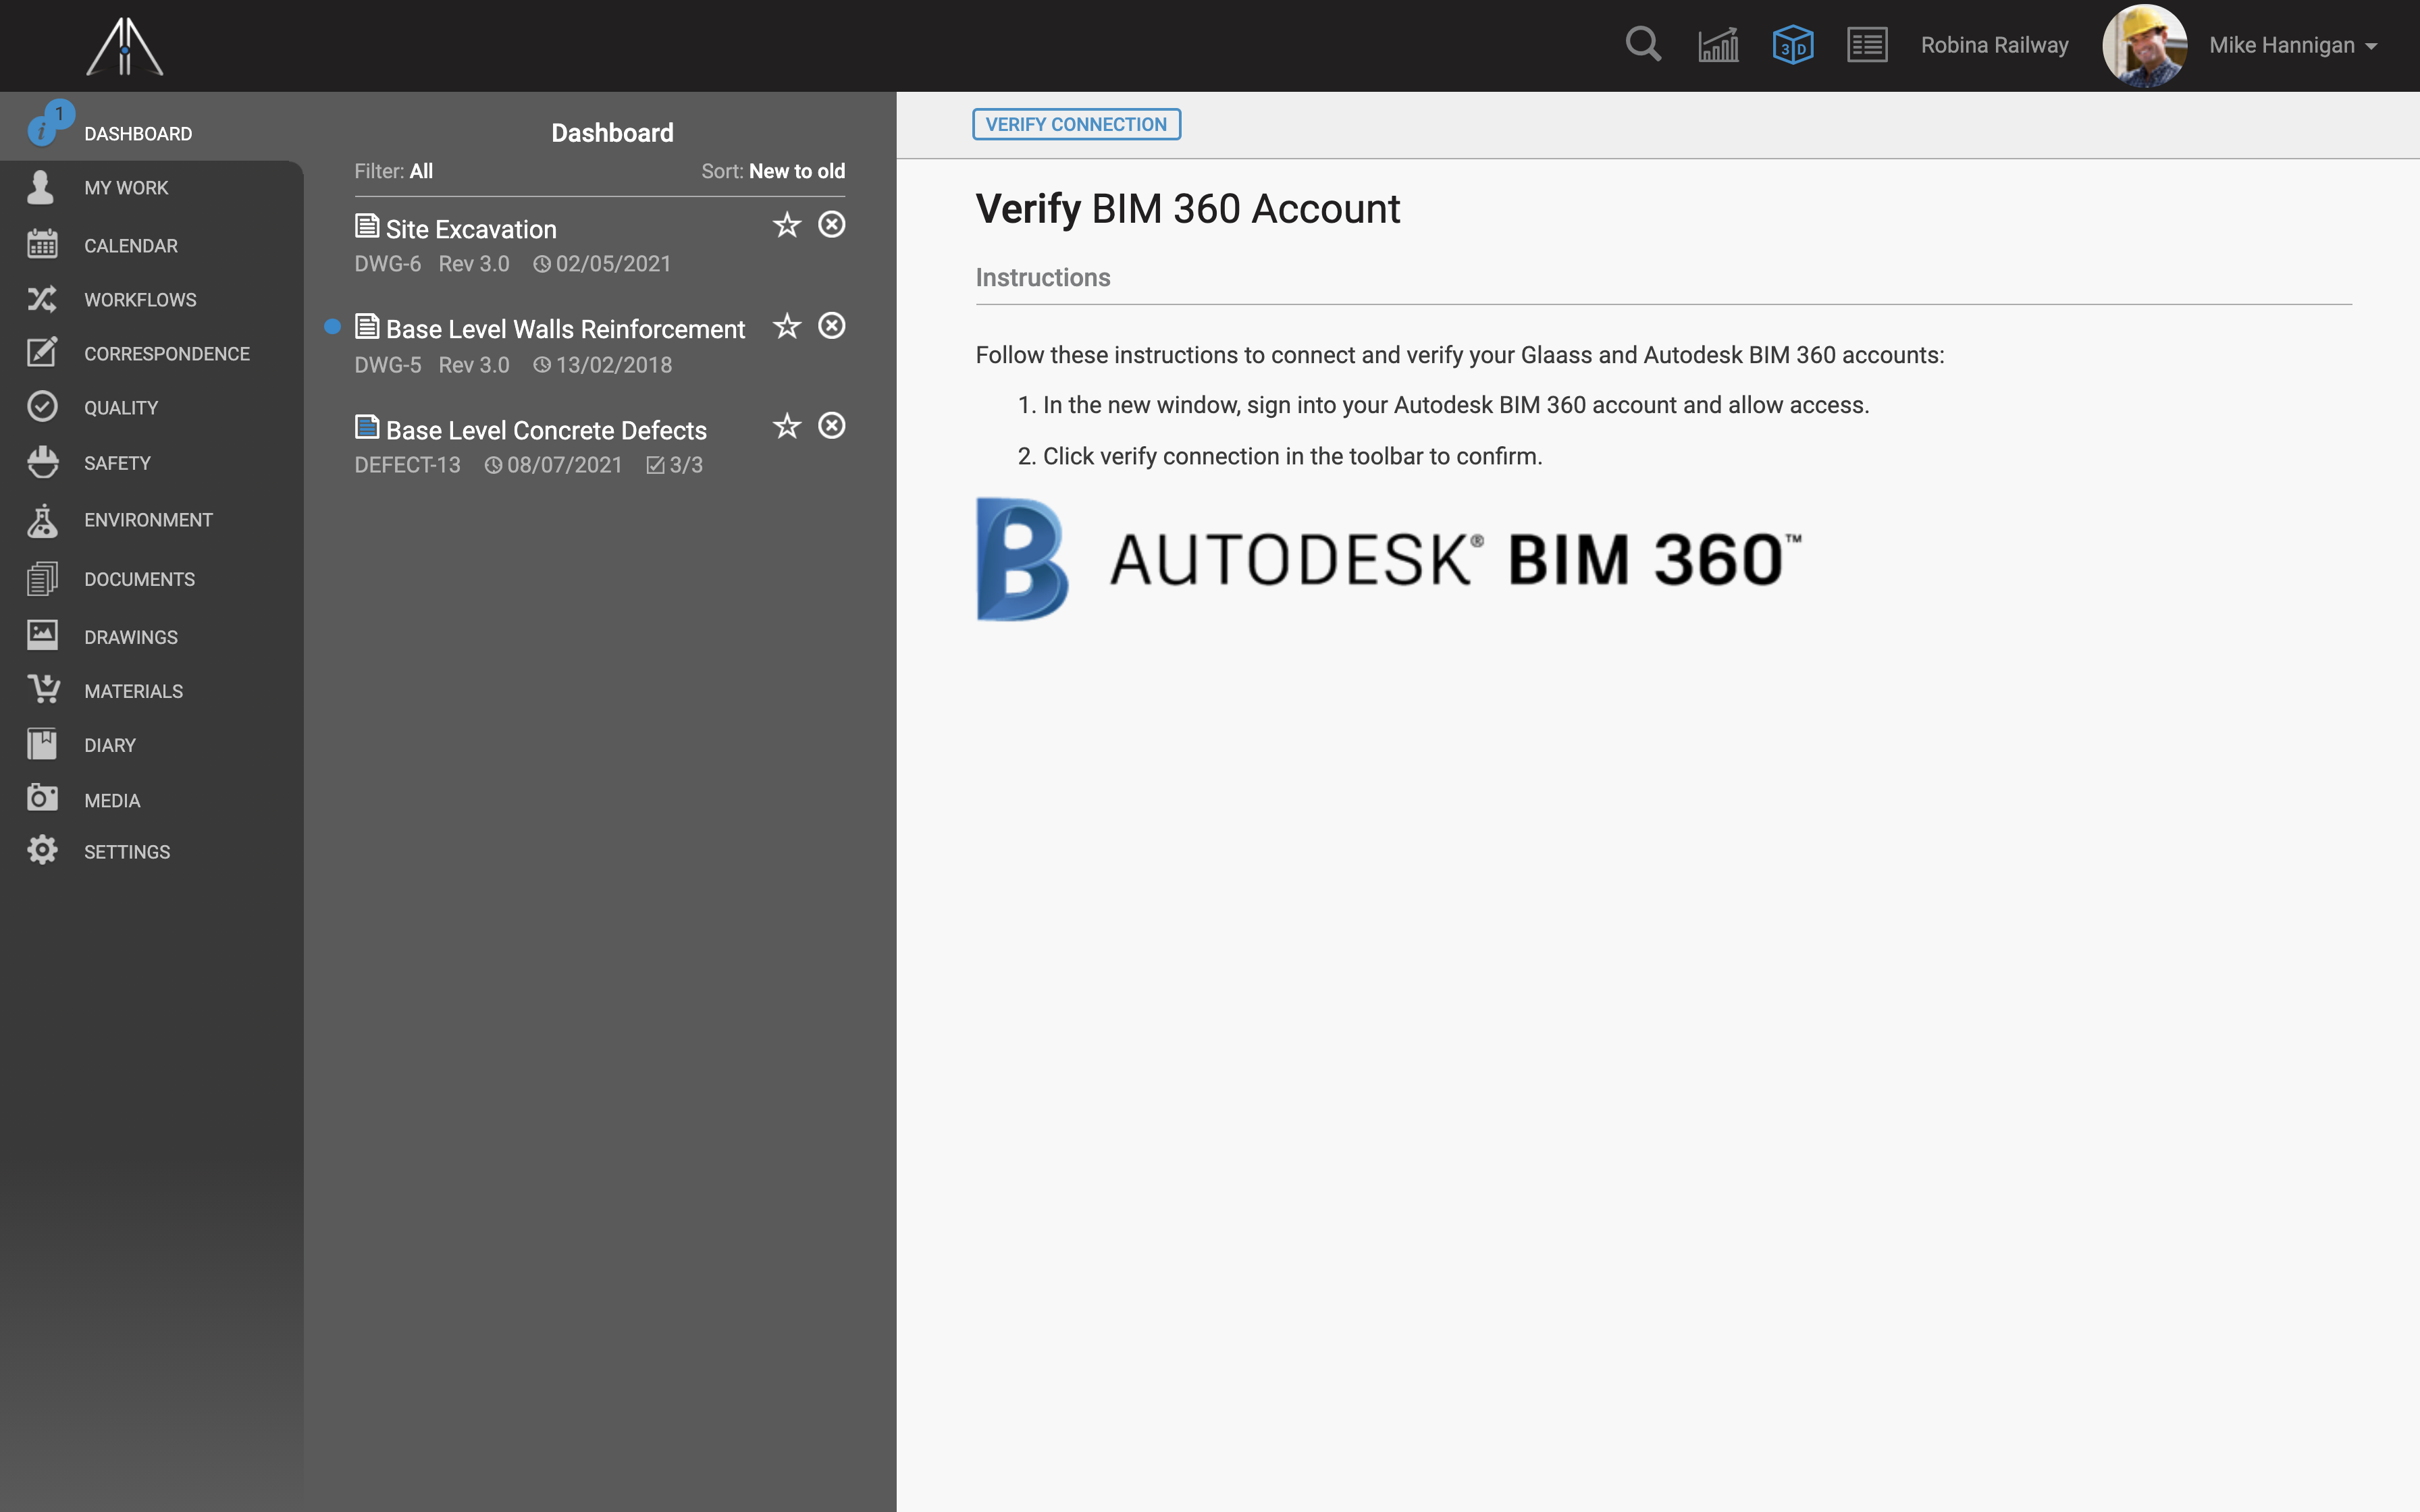 Setting up connection between Glaass account and Autodesk account